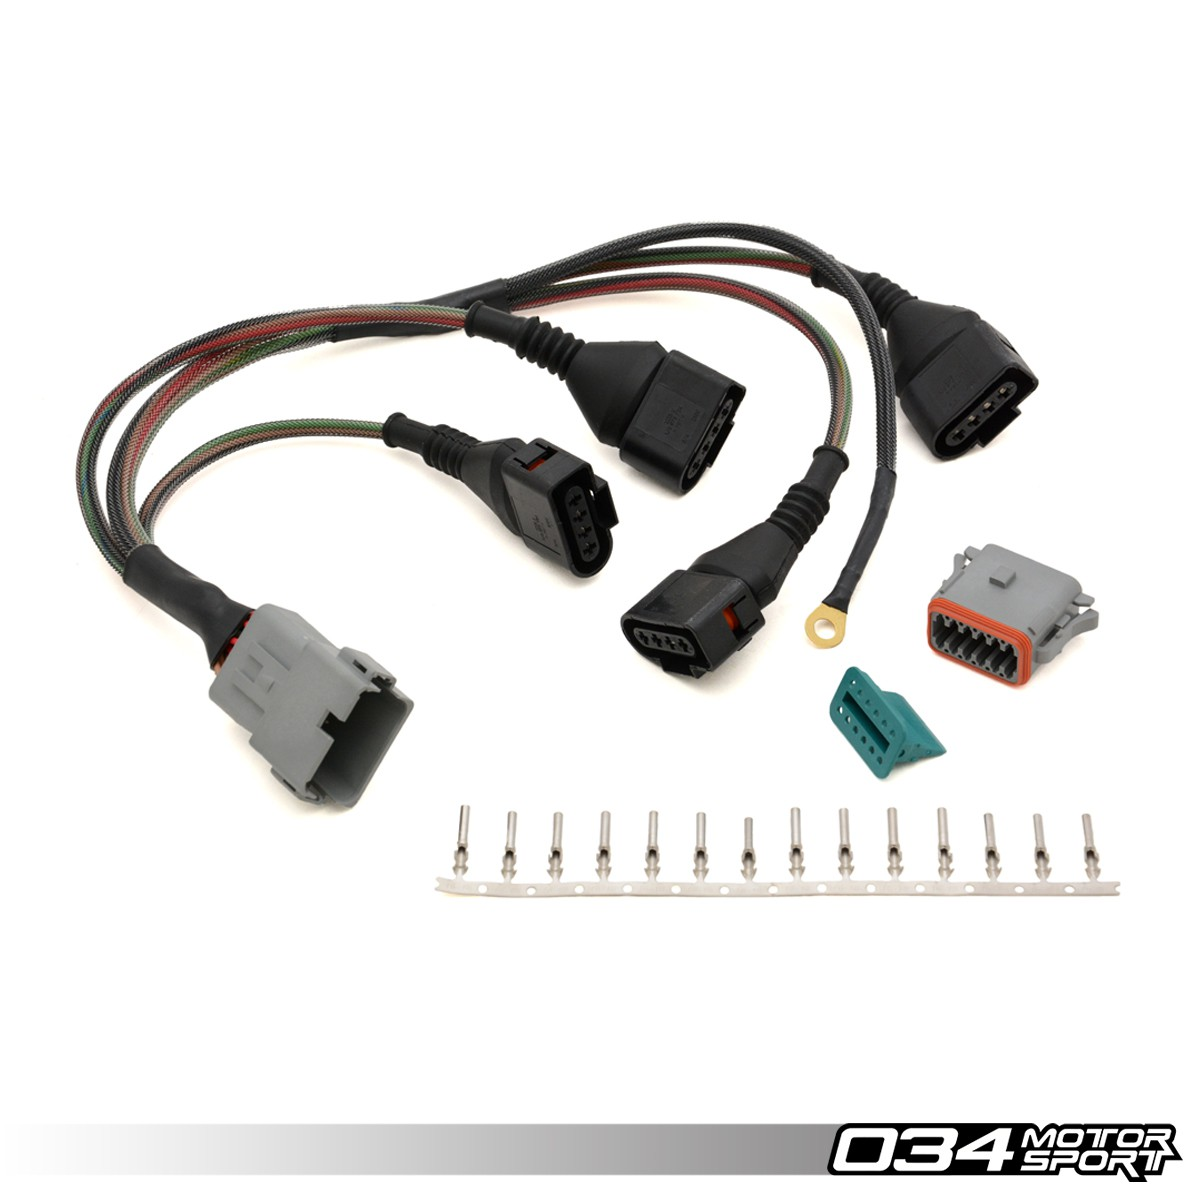 repair update harness audi volkswagen 18t with 4 wire coils 034motorsport 034 701 0004 2 repair update harness, audi volkswagen 1 8t with 4 wire coils audi a4 1.8t ignition coil wiring harness at edmiracle.co